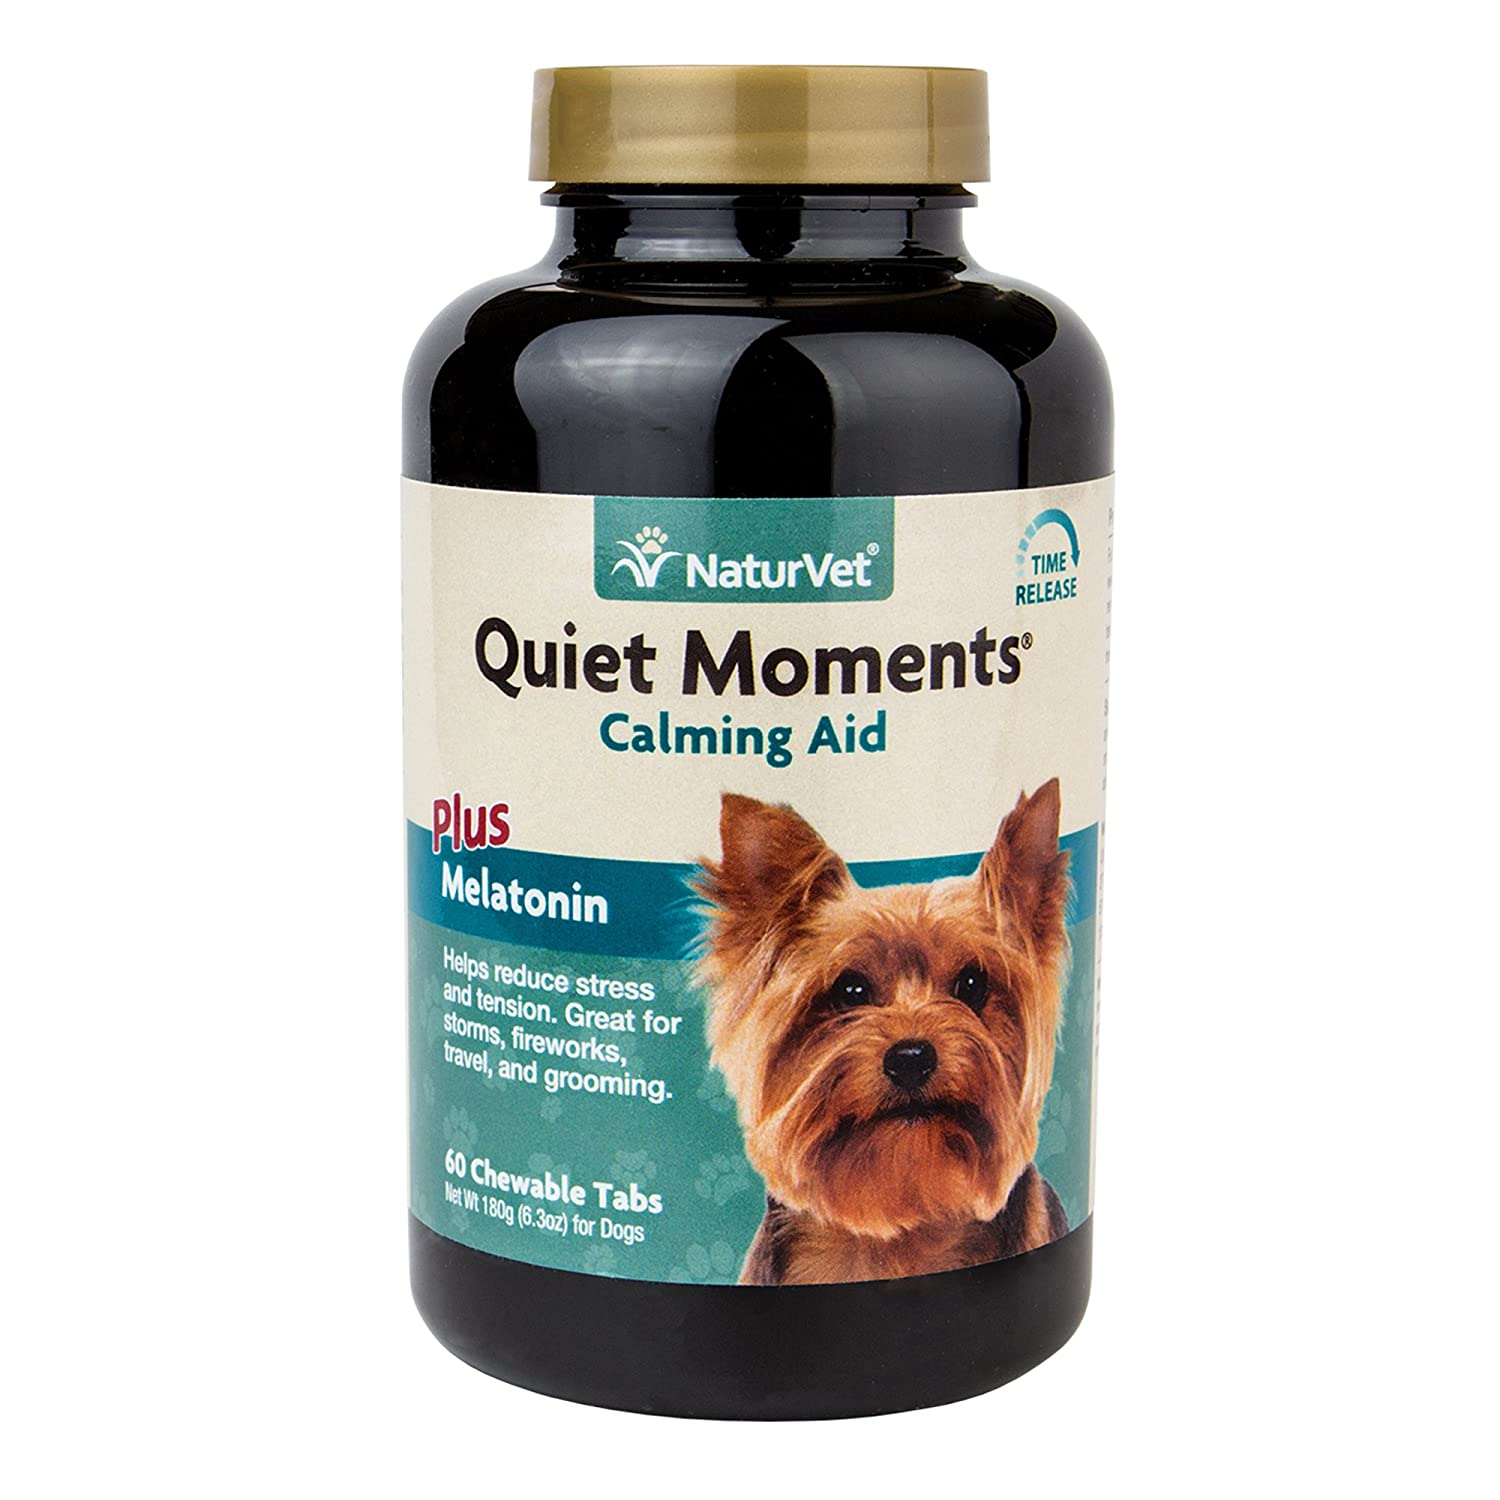 NaturVet QUIET MOMENTS CALMING AID DOG Stress Relief Chewable Tablet 60 Count: Amazon.es: Productos para mascotas